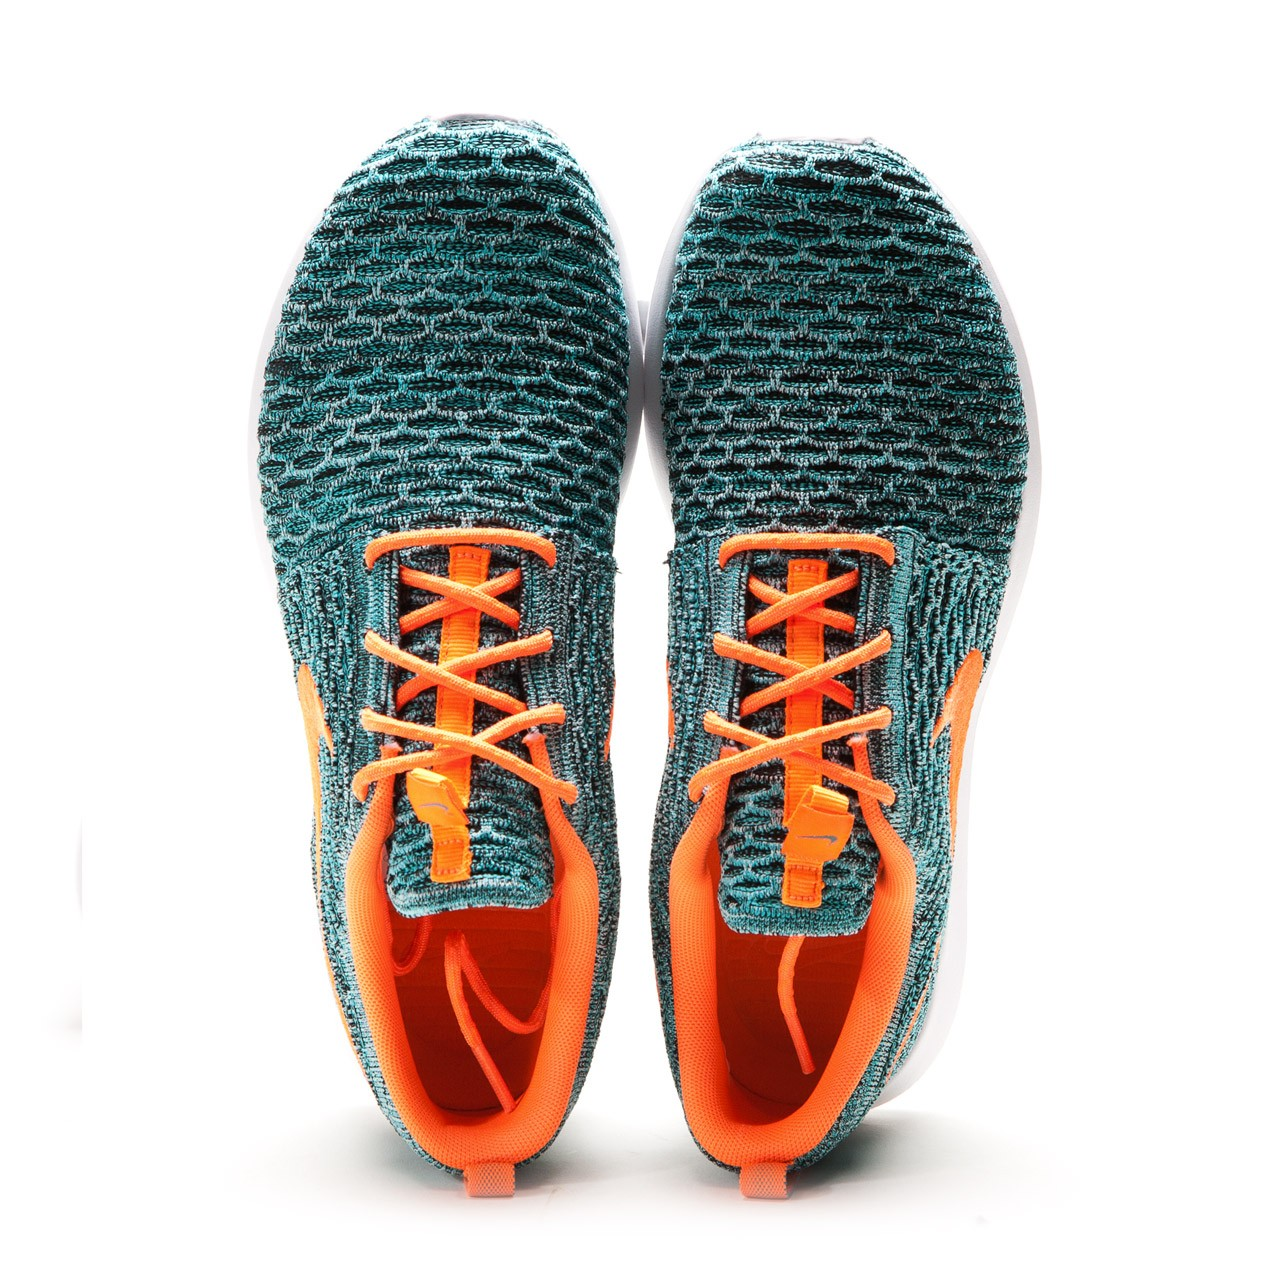 bc9916f67062 The Nike Roshe Flyknit Run Total Orange Hyper Jade retails at €129.90  (approx. RM520) and is available via Allike.